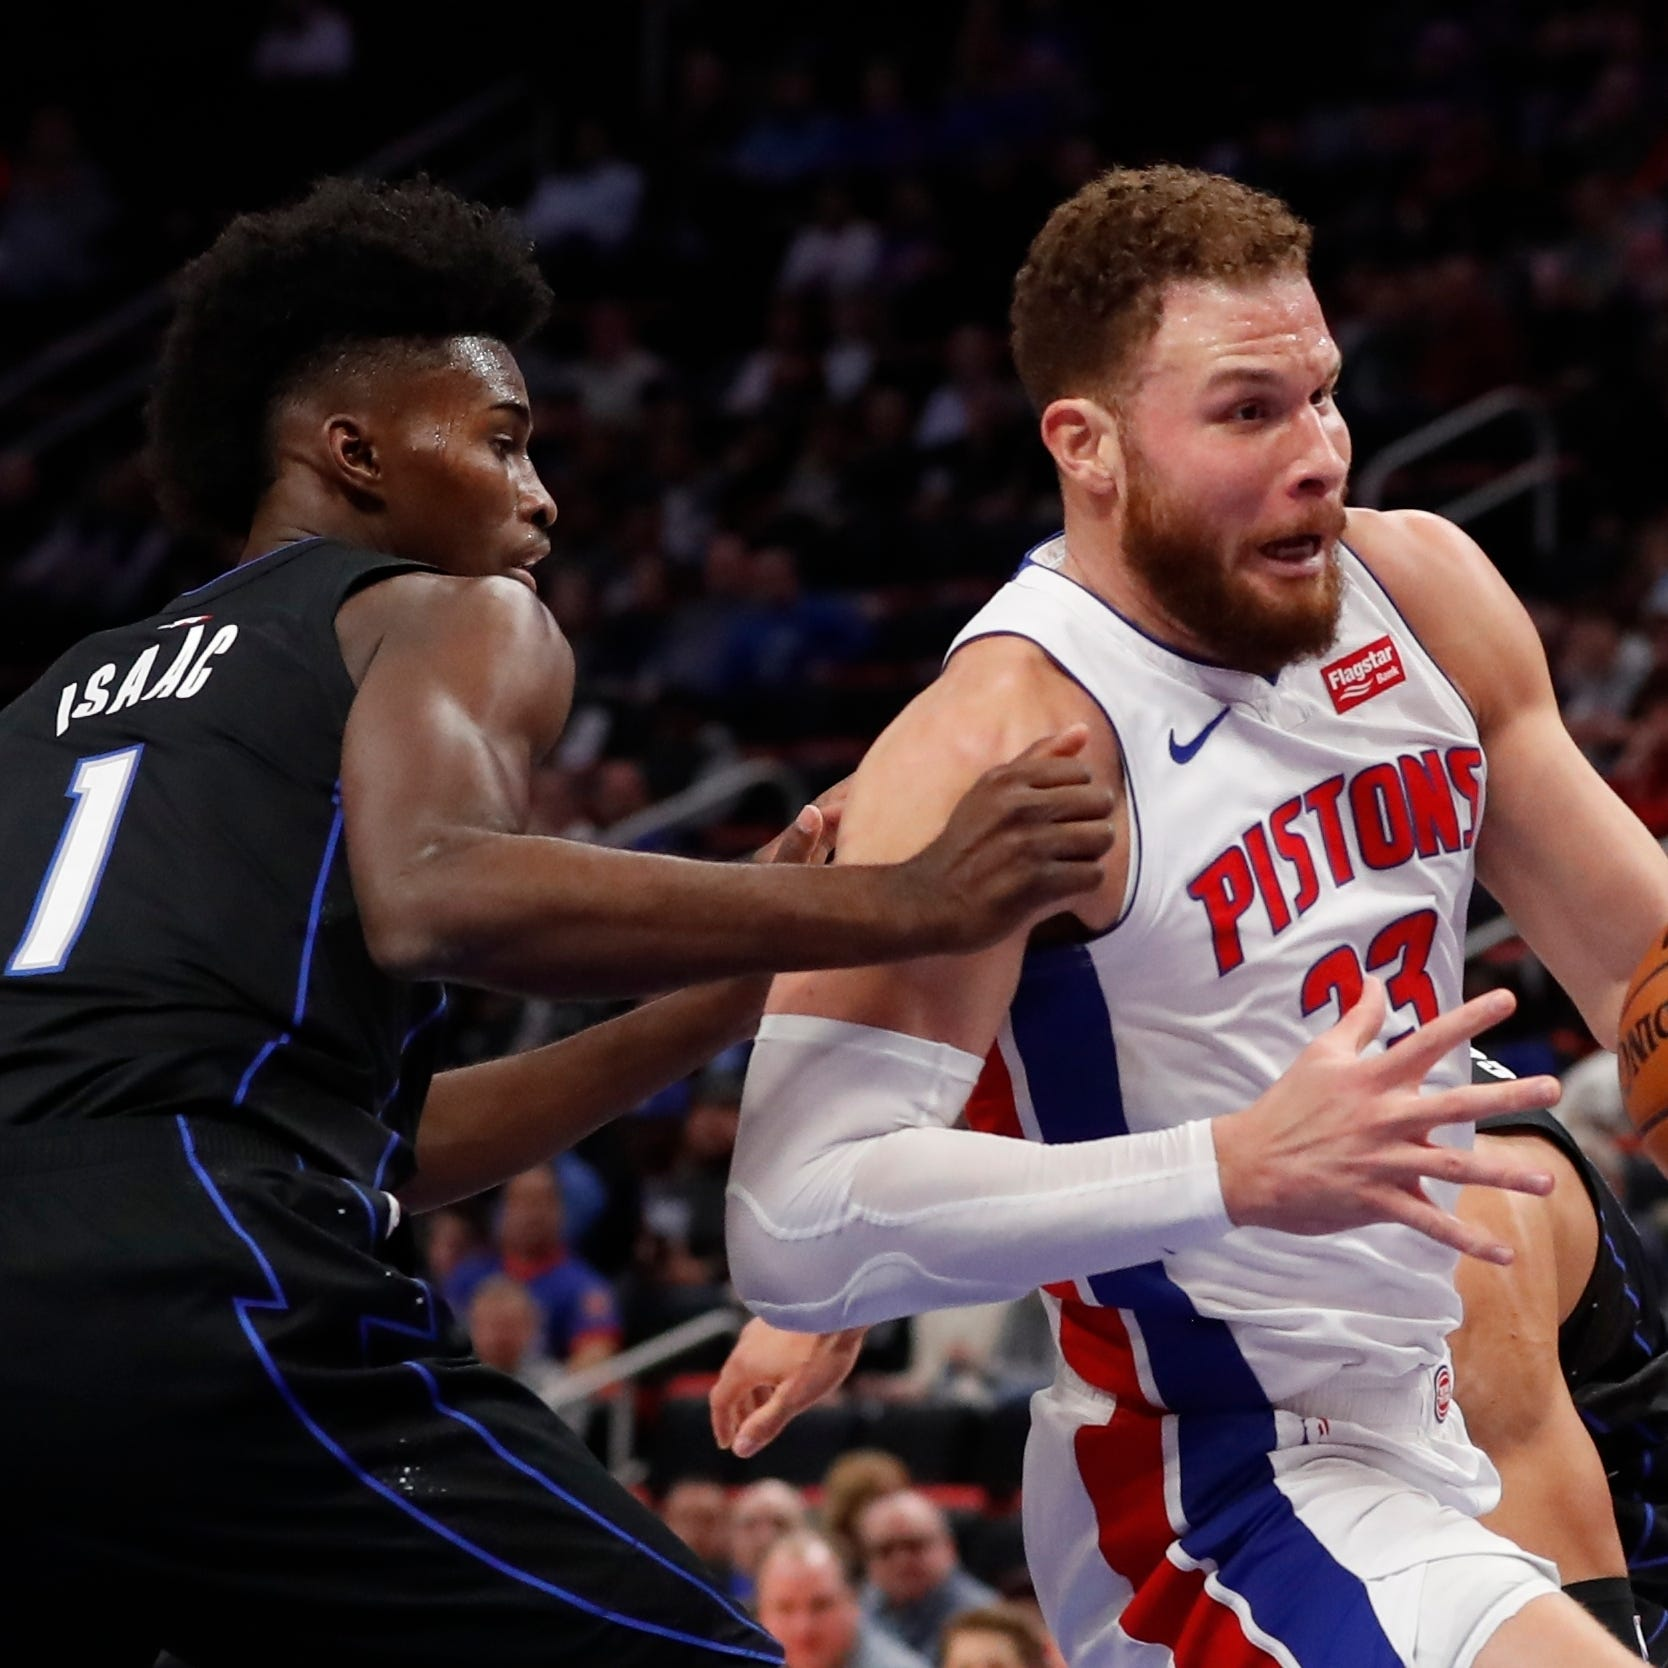 'We found a way': Pistons shake off Magic in OT